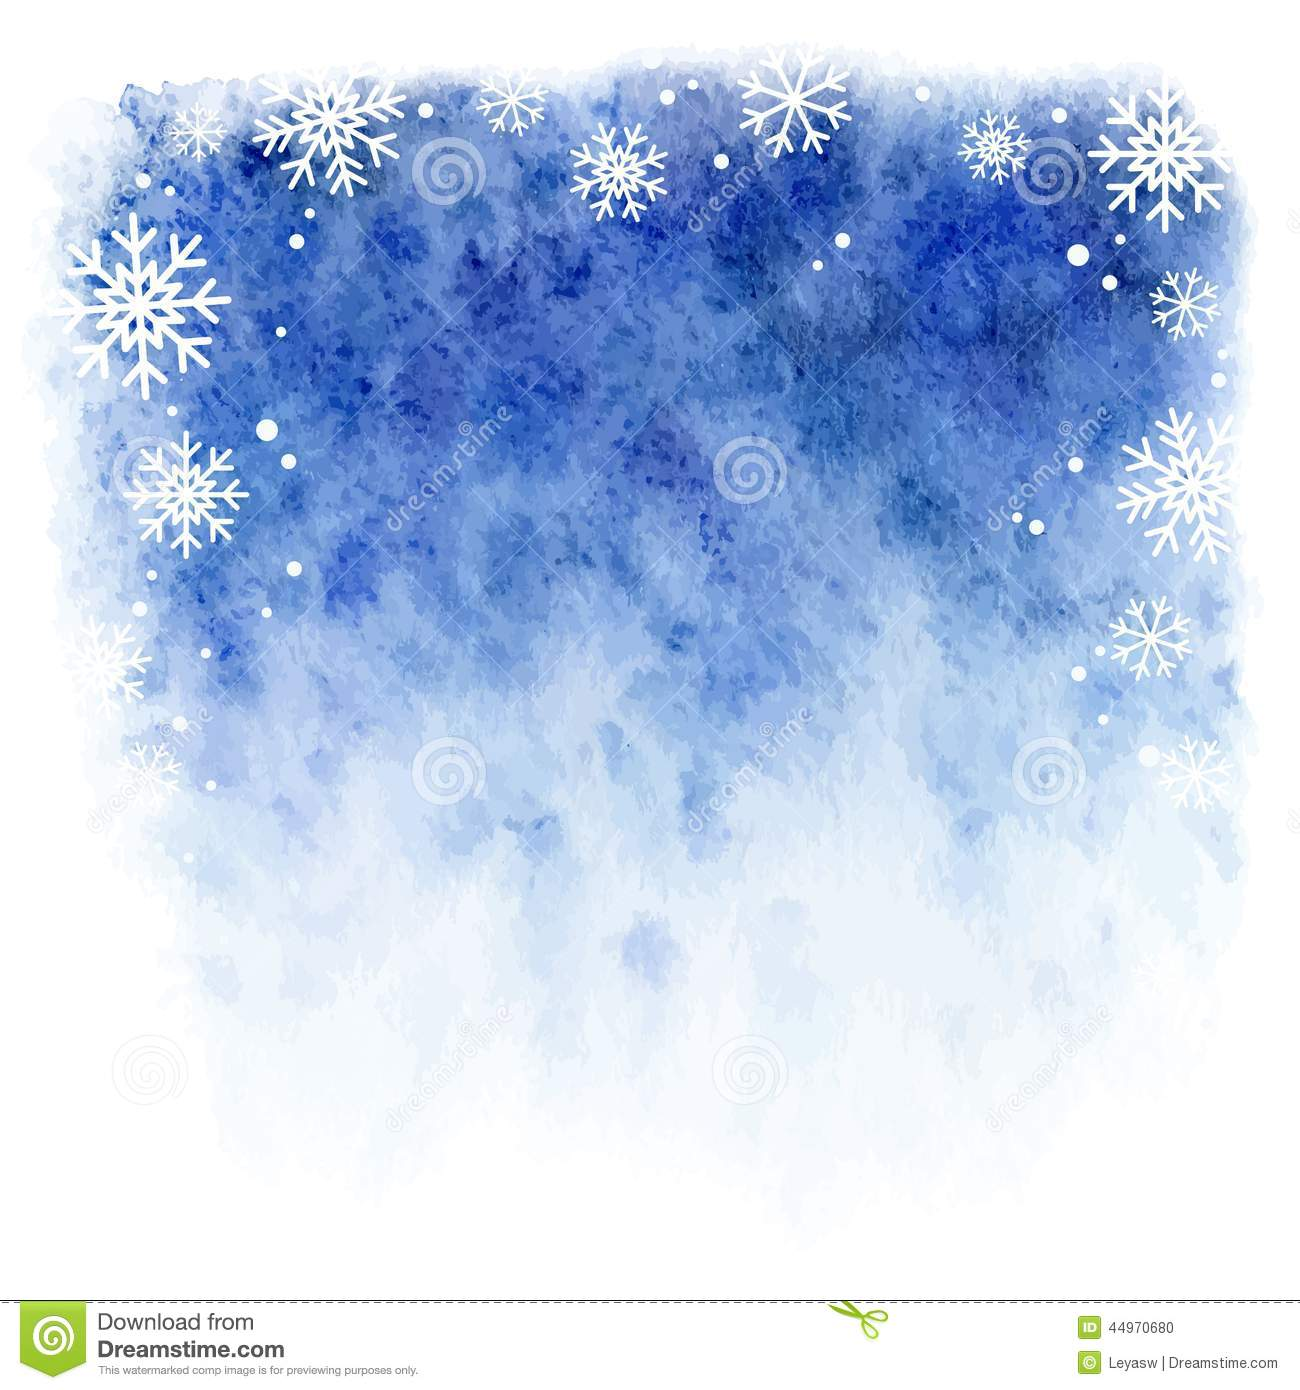 With white christmas background and snow vector vector background - Winter Watercolor Background Blue Sky With Falling